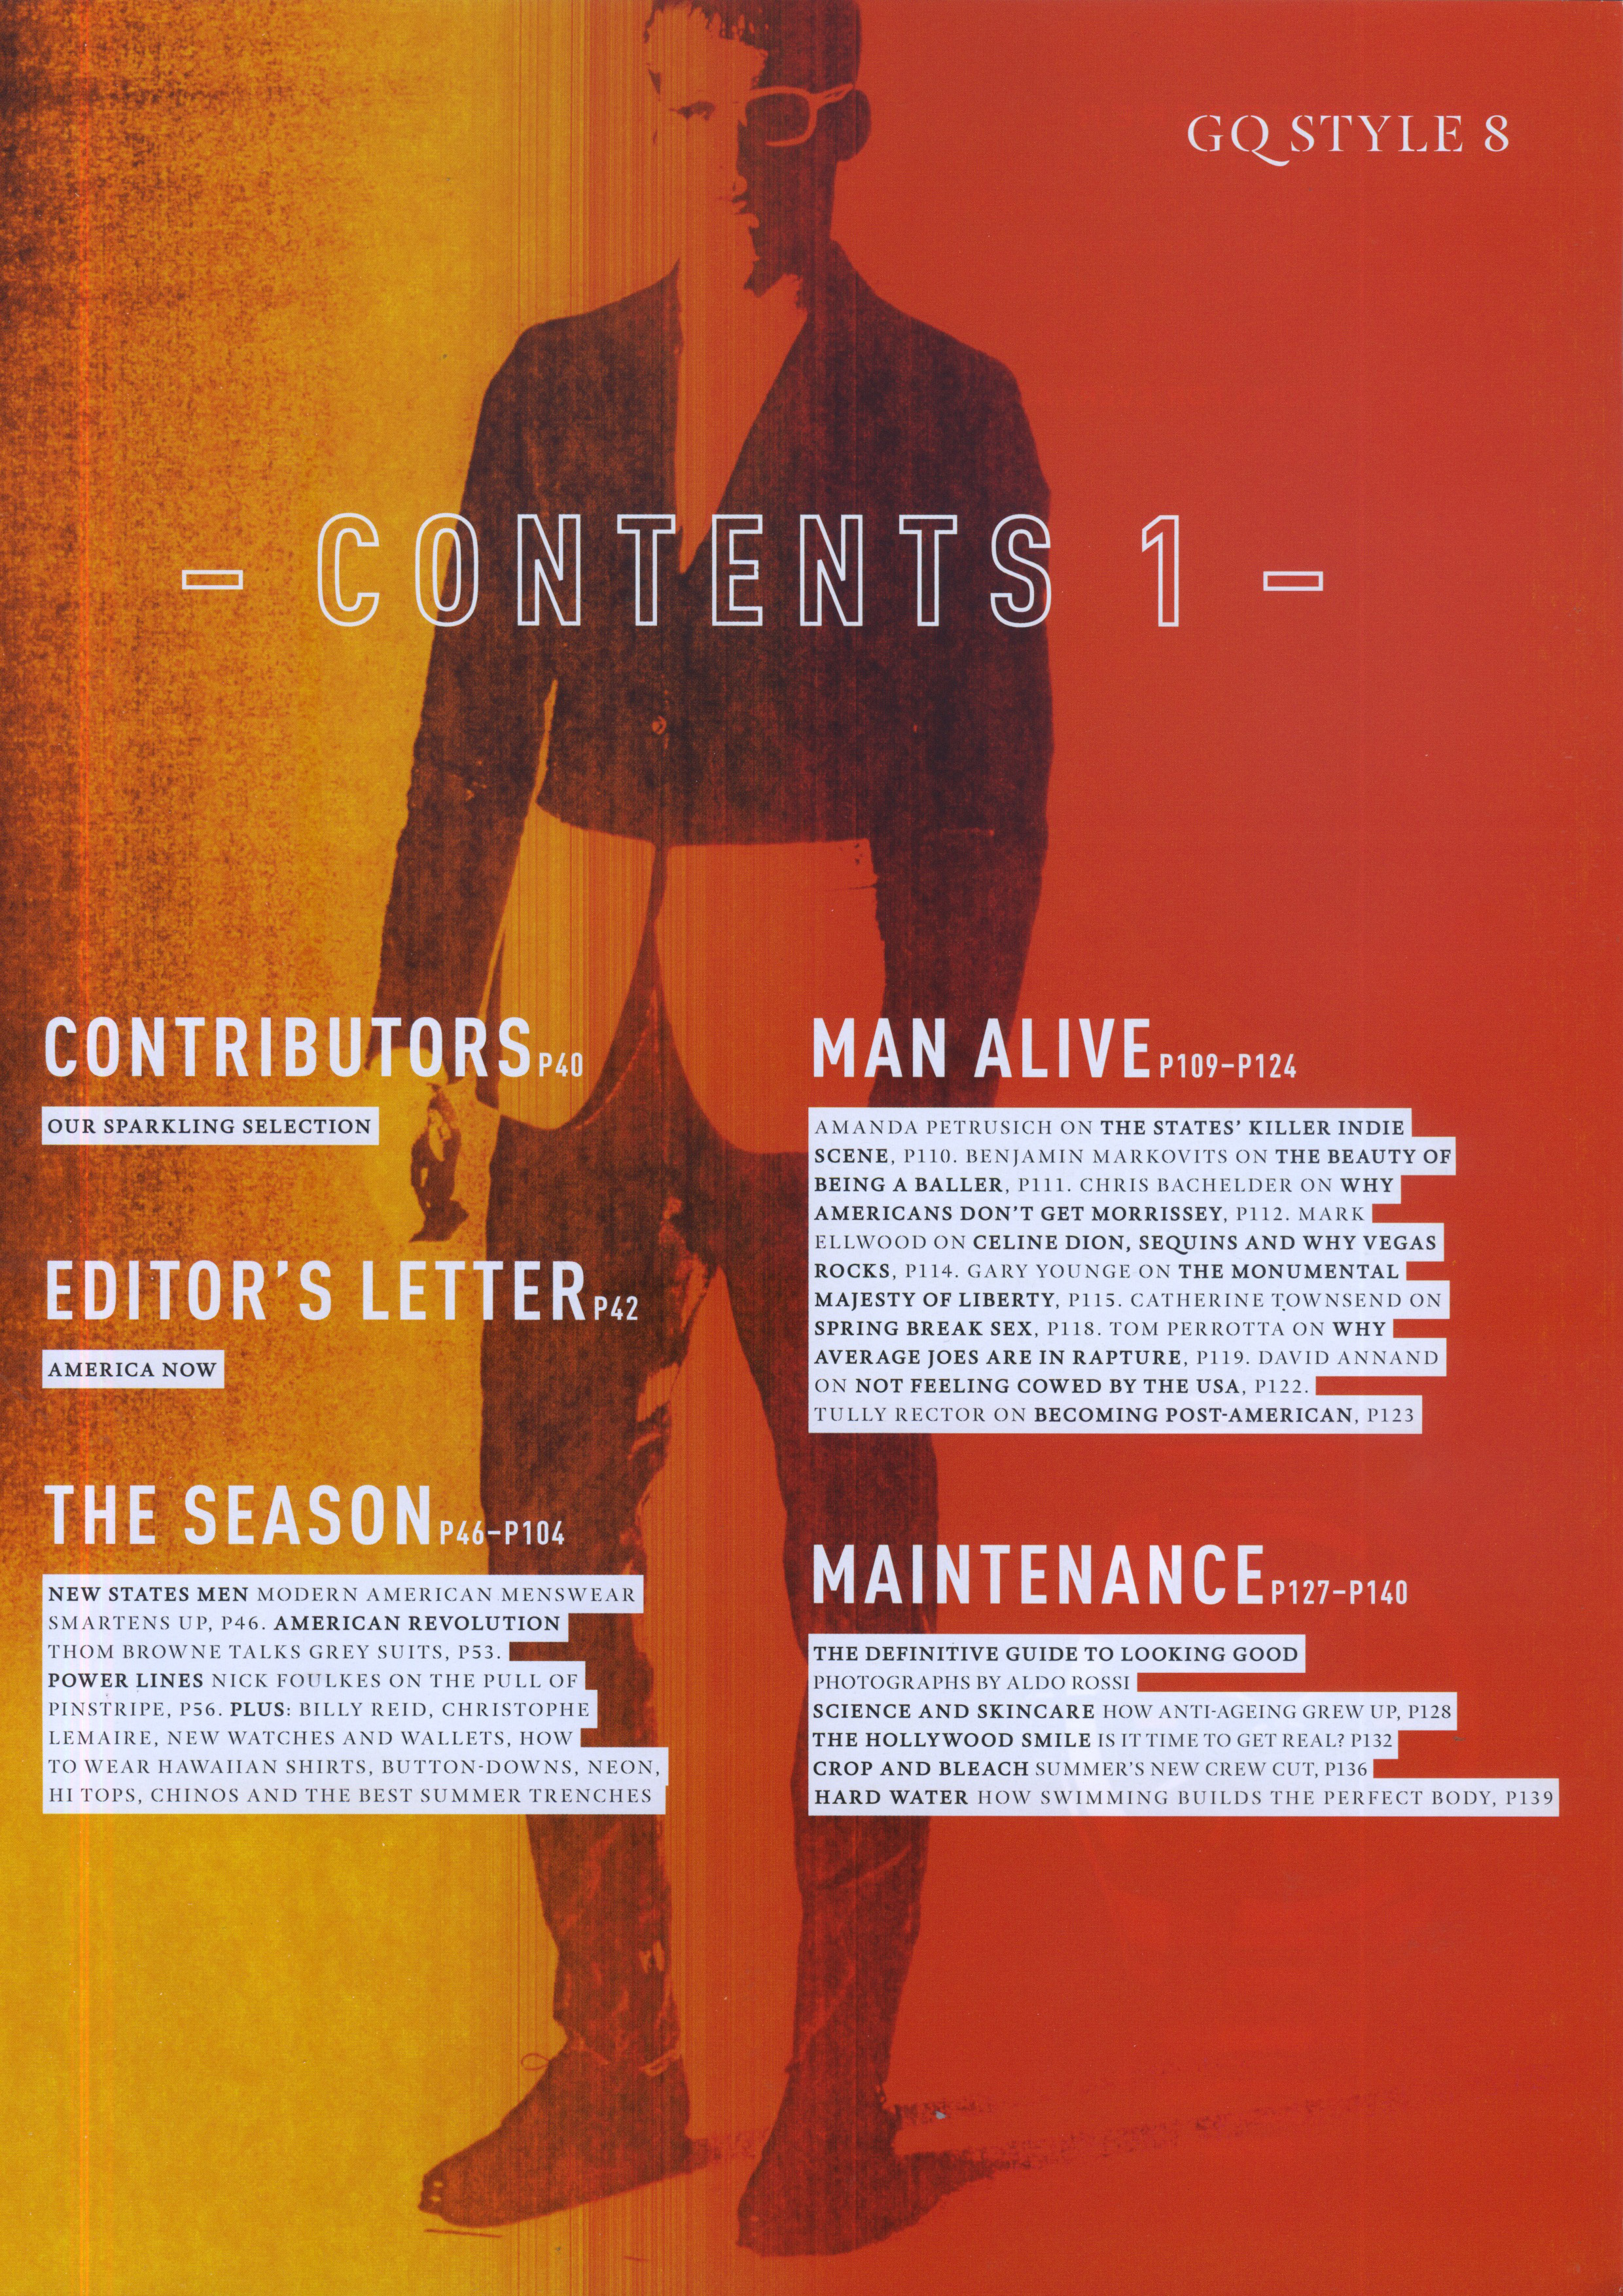 Issue 8 SS09 - Contents.jpeg